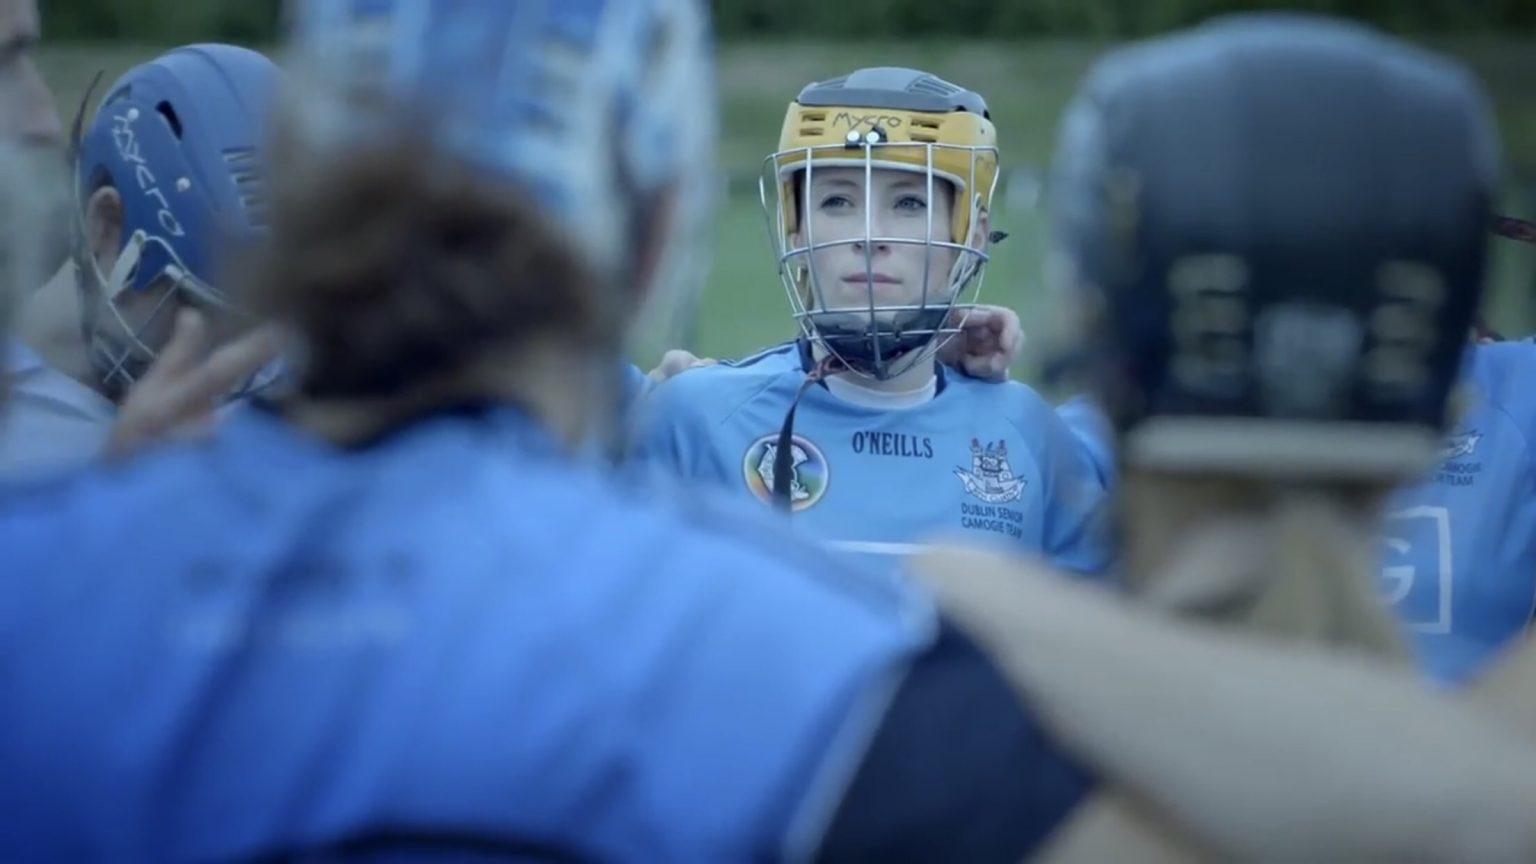 Documentary On The Dublin Senior Camogie Squad Called True Blues Airs Next Monday On Eir Sport At 9:30pm